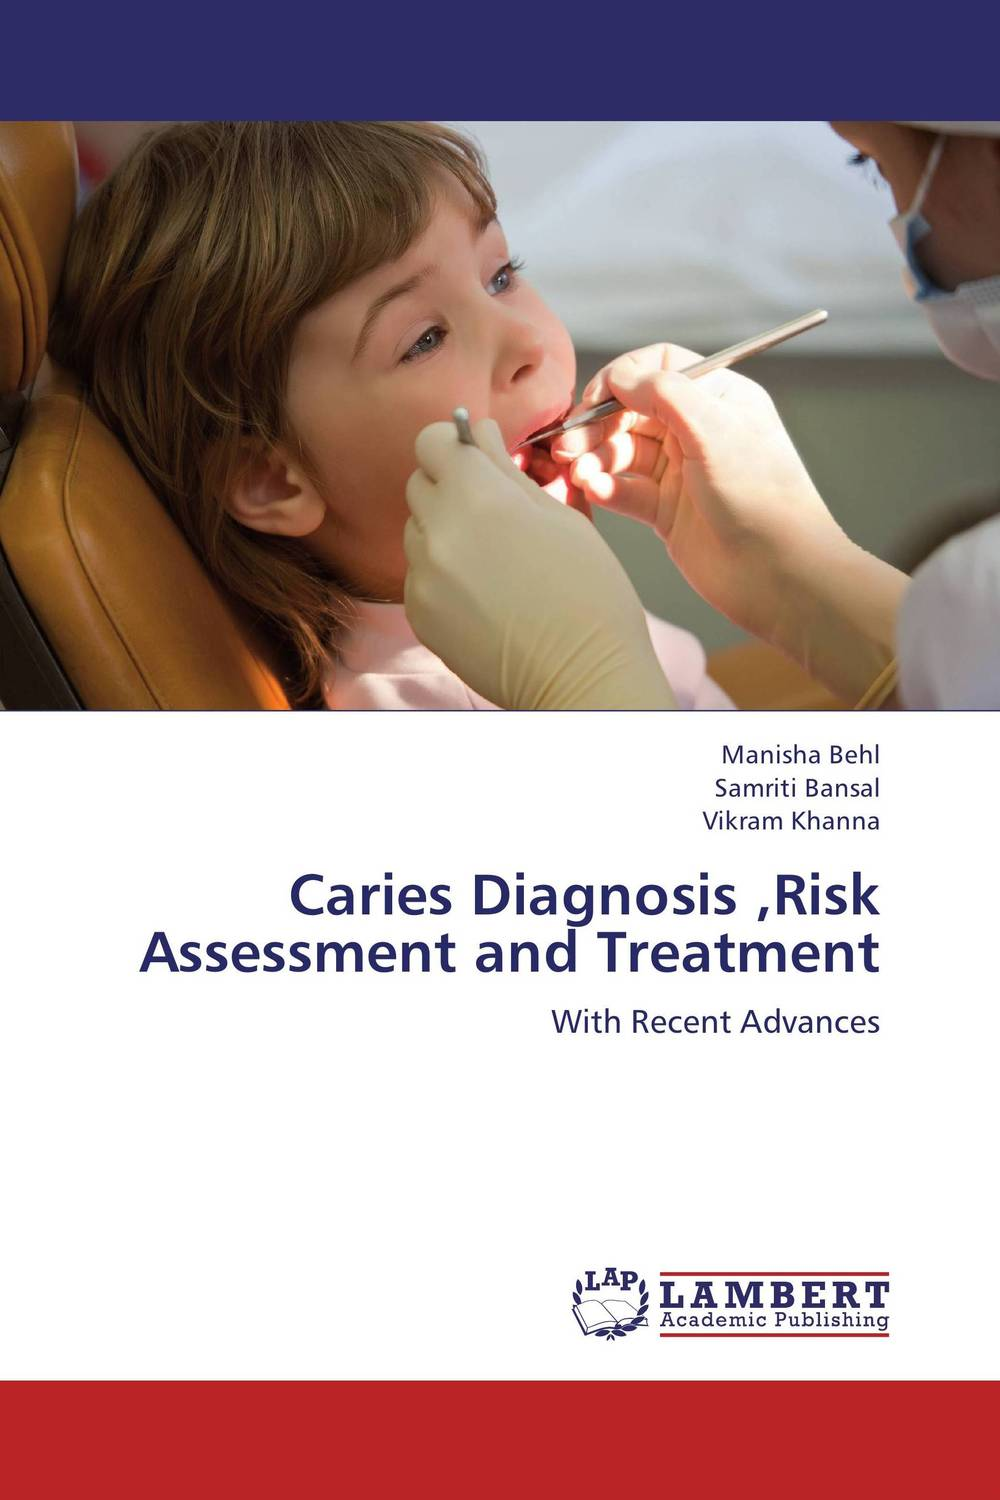 Caries Diagnosis ,Risk Assessment and Treatment drugs during pregnancy and lactation treatment options and risk assessment